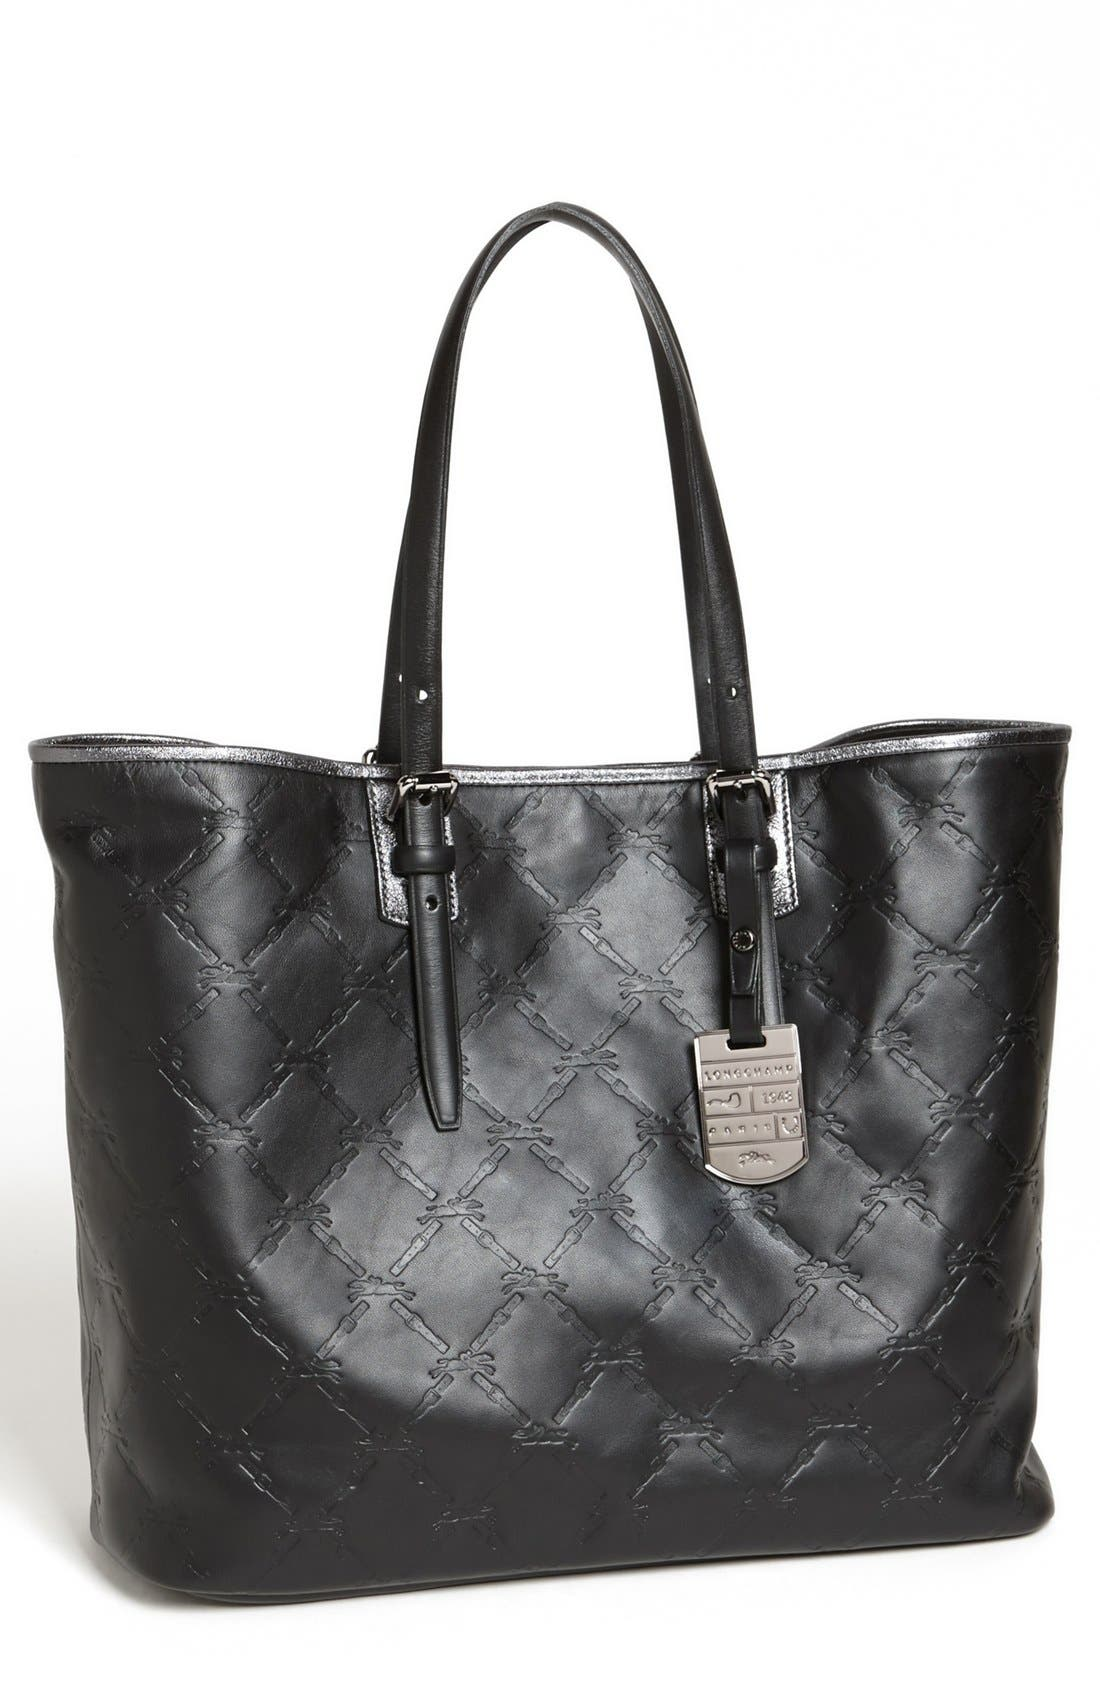 Main Image - Longchamp 'LM Cuir - Medium' Leather Tote